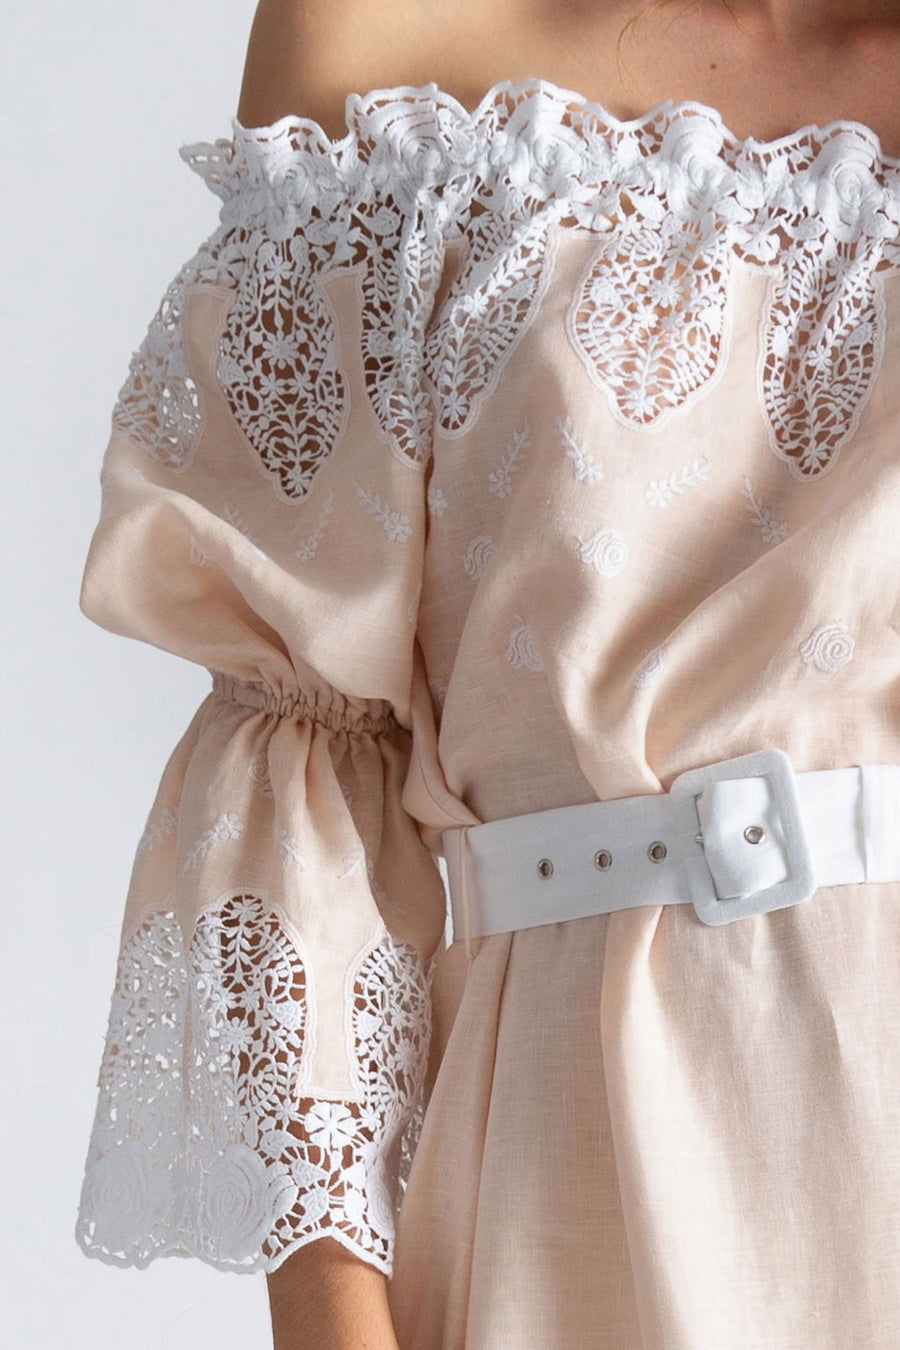 This is a detail photo of a peasant sleeve on a linen and lace gown. The sleeve has lace details, along with the neckline, that includes floral shapes.